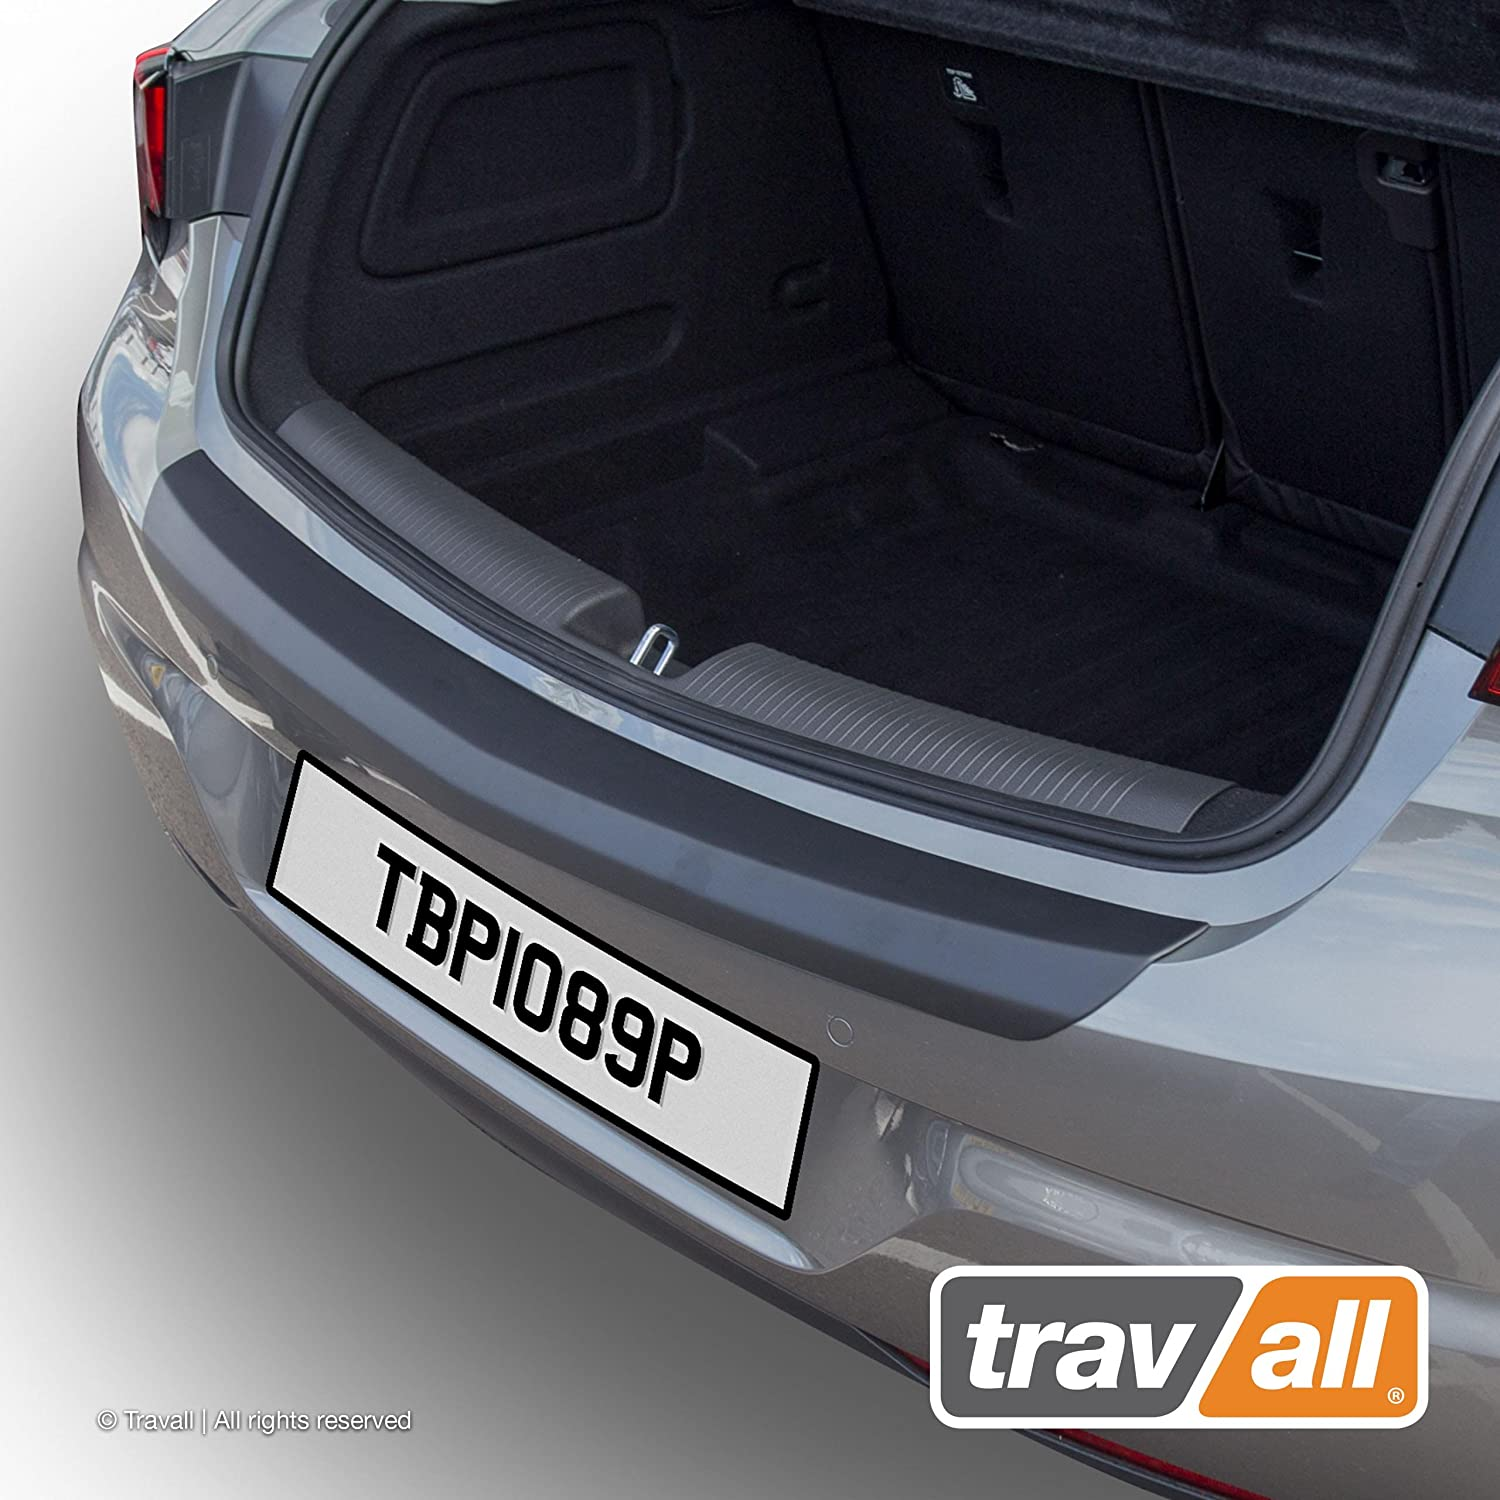 Travall Protector TBP1089P Vehicle-Specific Black Plastic Moulded Rear Bumper Protector Smooth